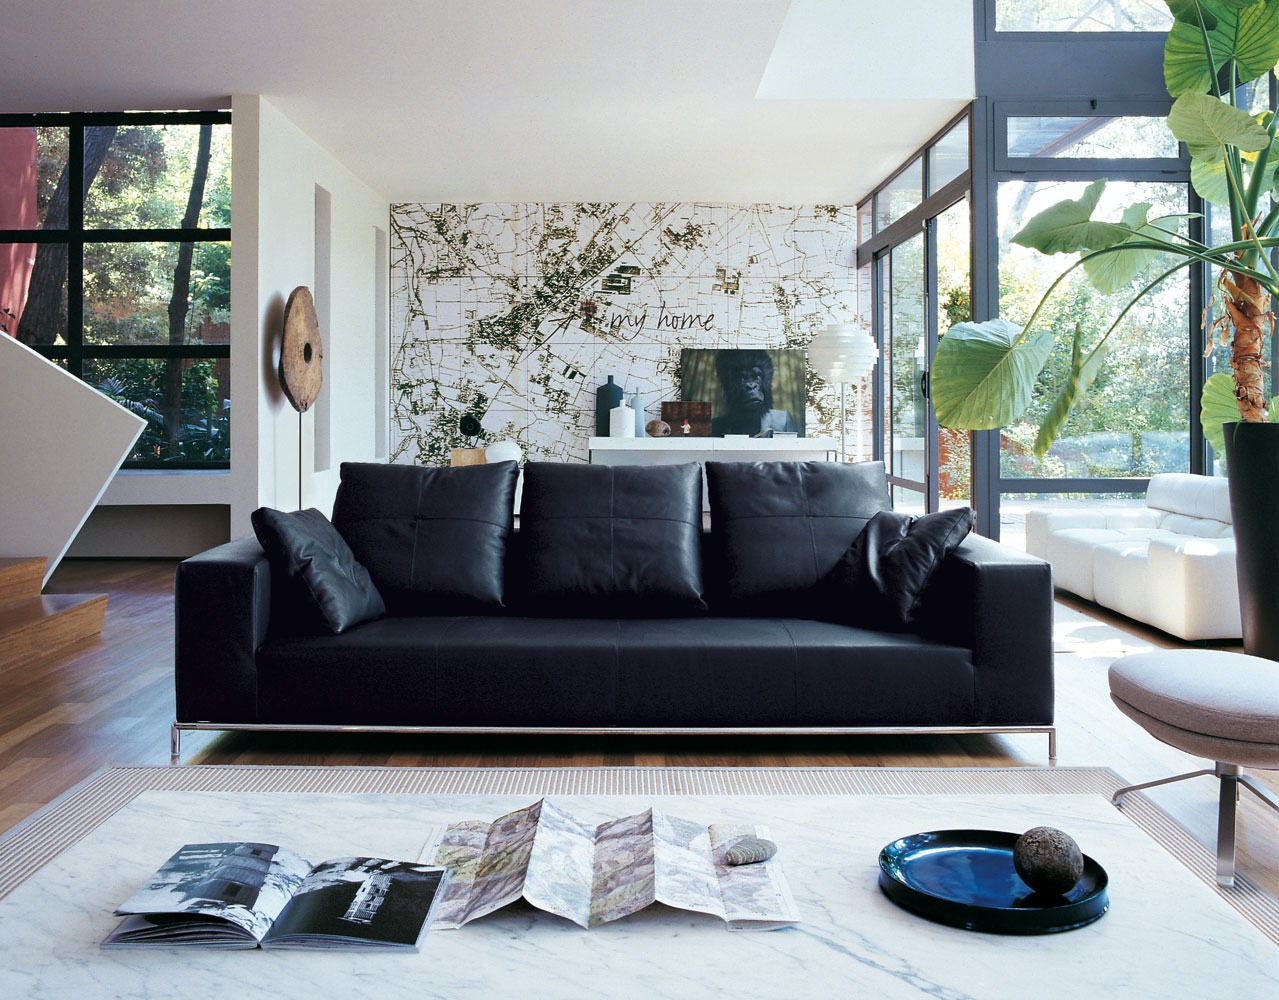 Interior Design With Leather Furniture ~ Black leather sofa interior design ideas